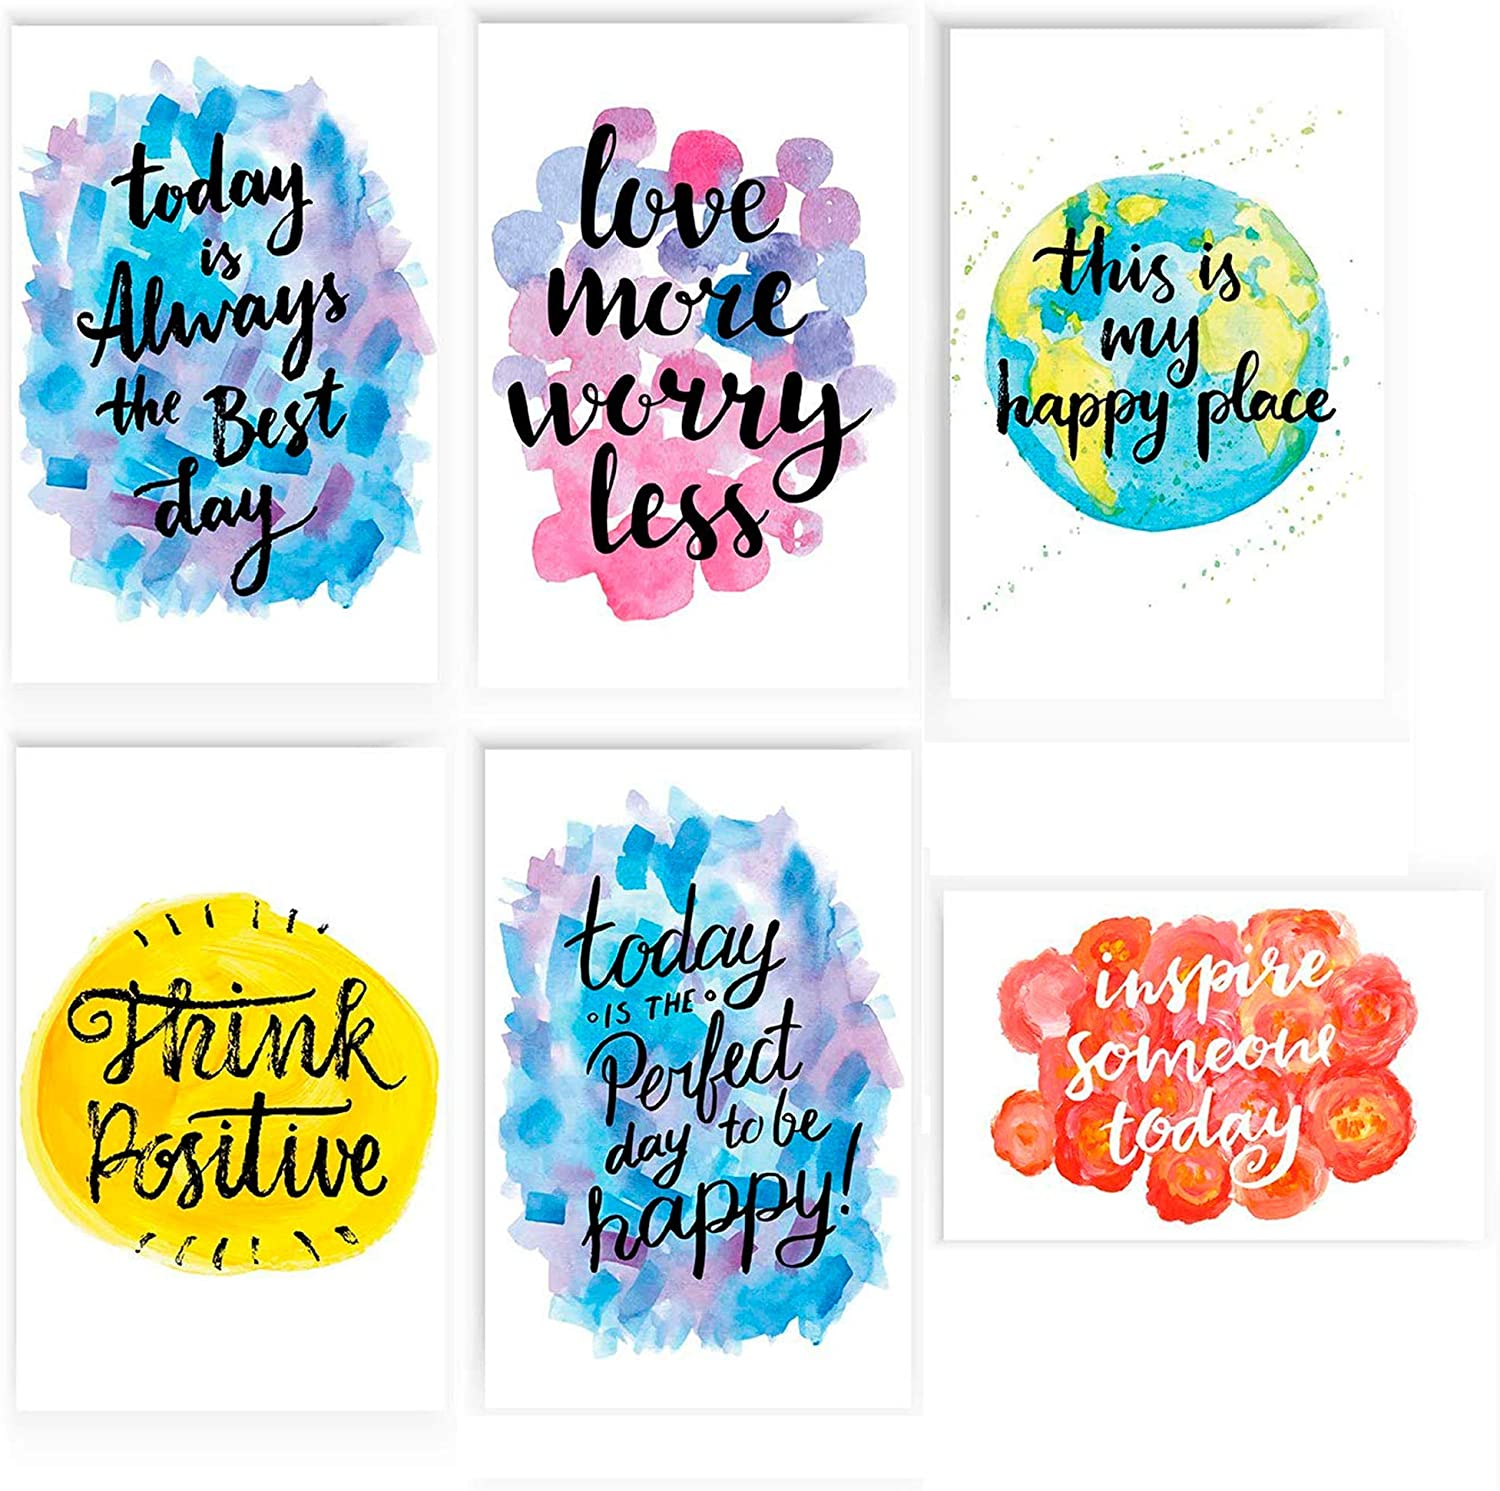 Inspirational Poster   Set of Six 11x17 Posters   Motivational Signs for Office   Decorative Wall Art for Every Day Motivation   Inspiring Artwork With Positive Quotes   Great for Classroom Decor